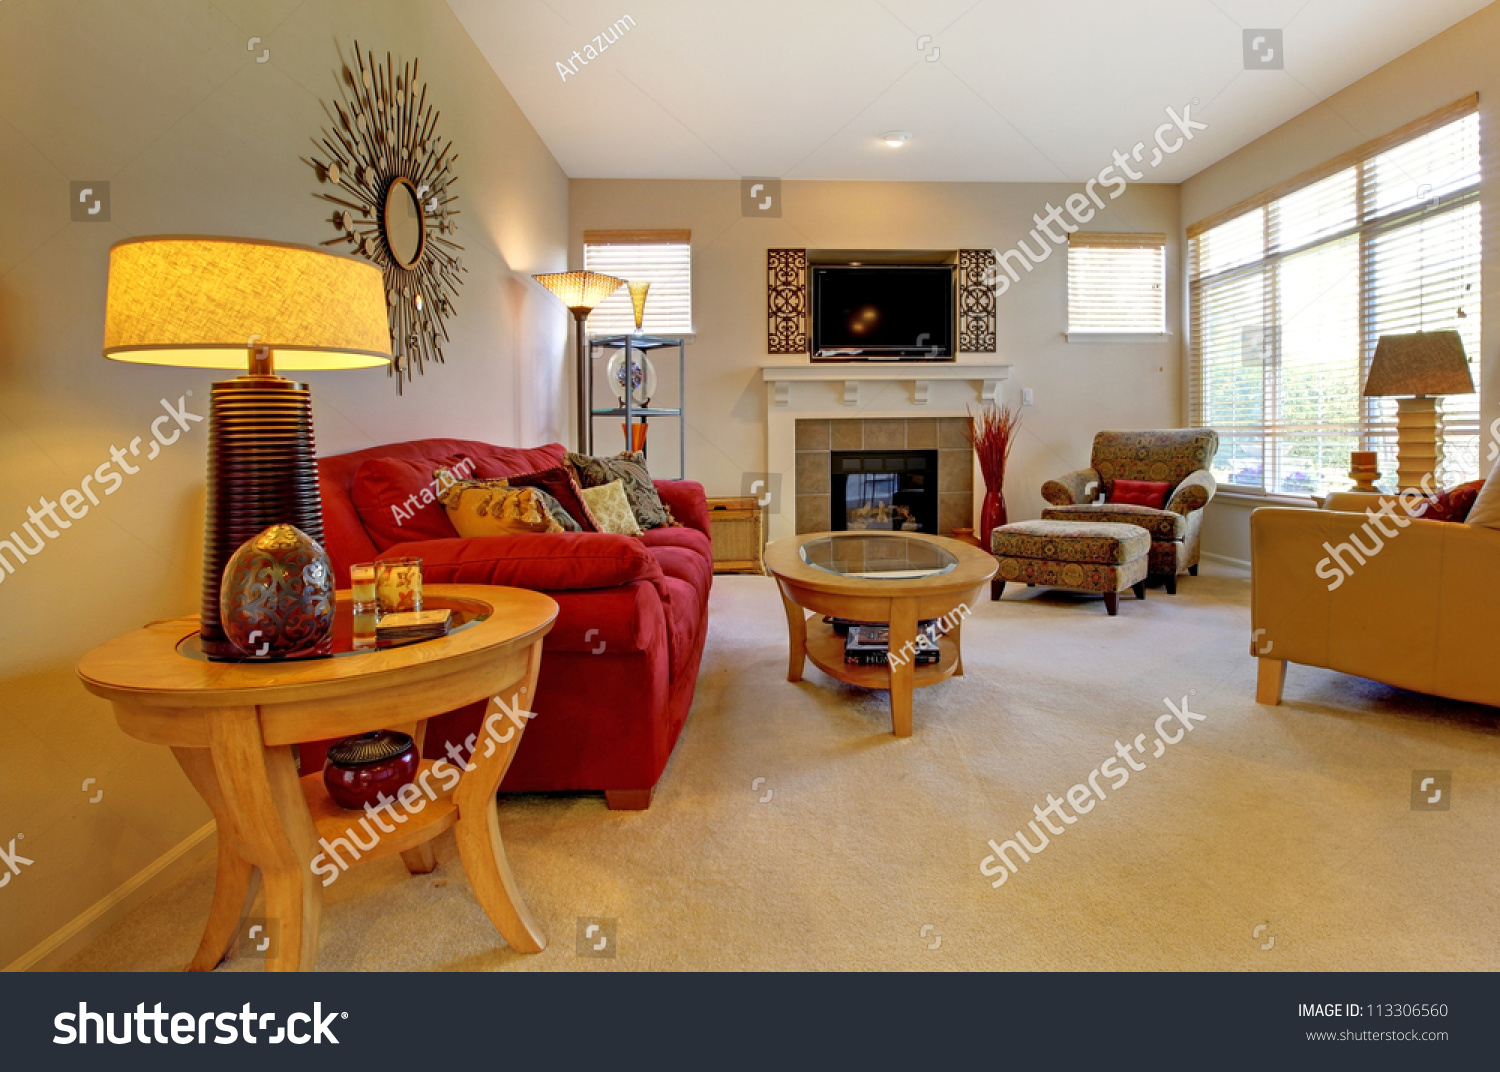 Living Room With Red Furniture Elegant Living Room With Red Sofa Fireplace Tv And Many Windows